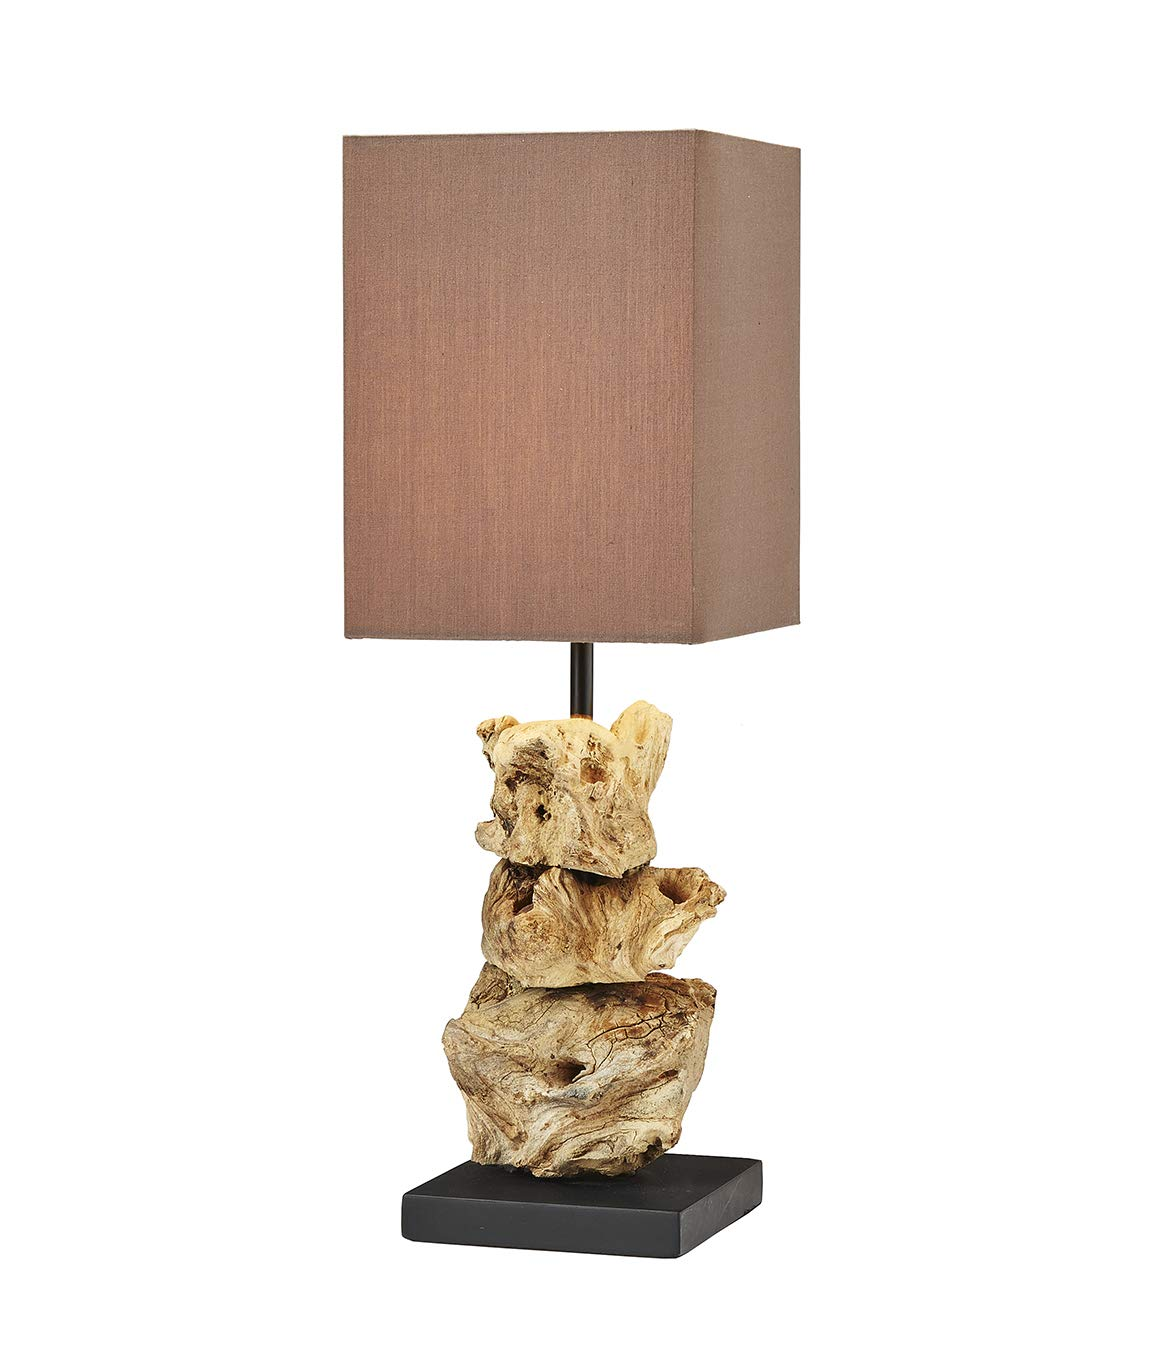 thentique driftwood table lamp natural rustic reclaimed wood accent lamps sculpture handmade earthy finished brown cotton fabric shade perfect desk ikea cube storage entrance pier